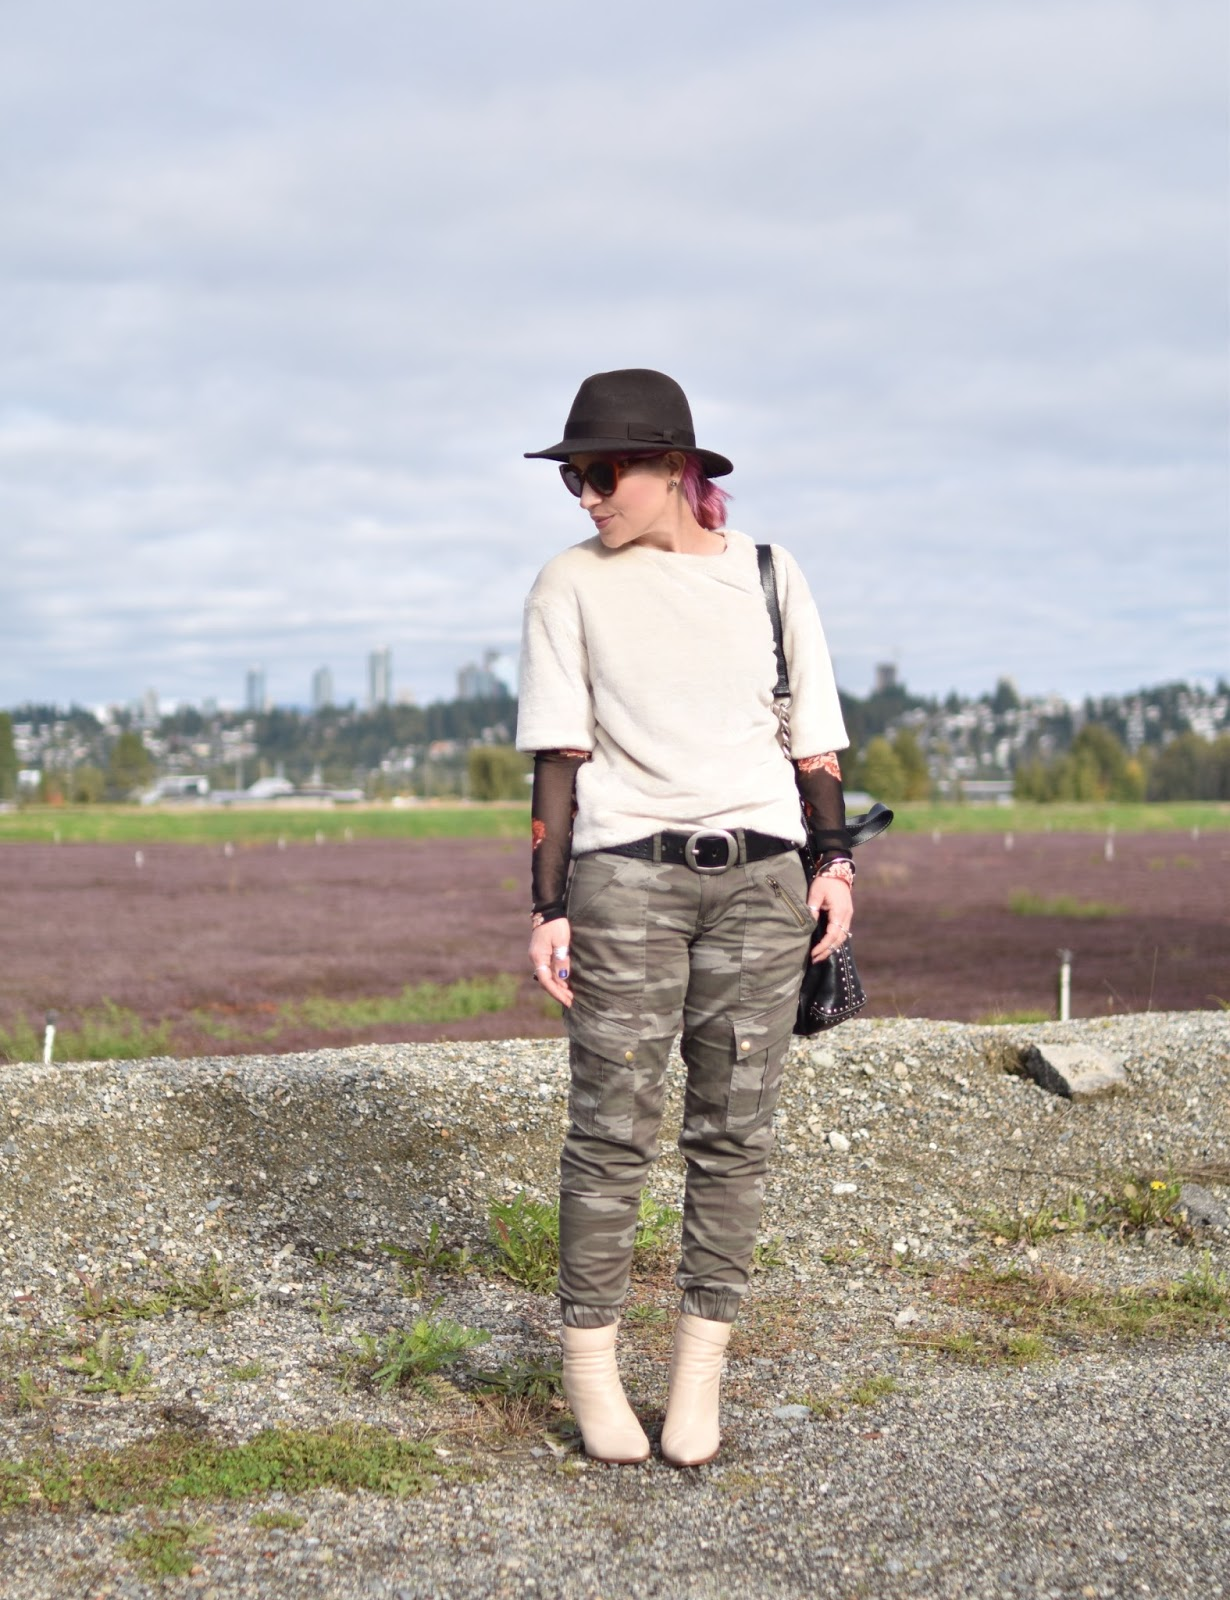 Monika Faulkner outfit inspiration - mesh floral and ivory faux-fur tops, camouflage trousers, ivory booties, felt fedora, cat-eye sunglasses